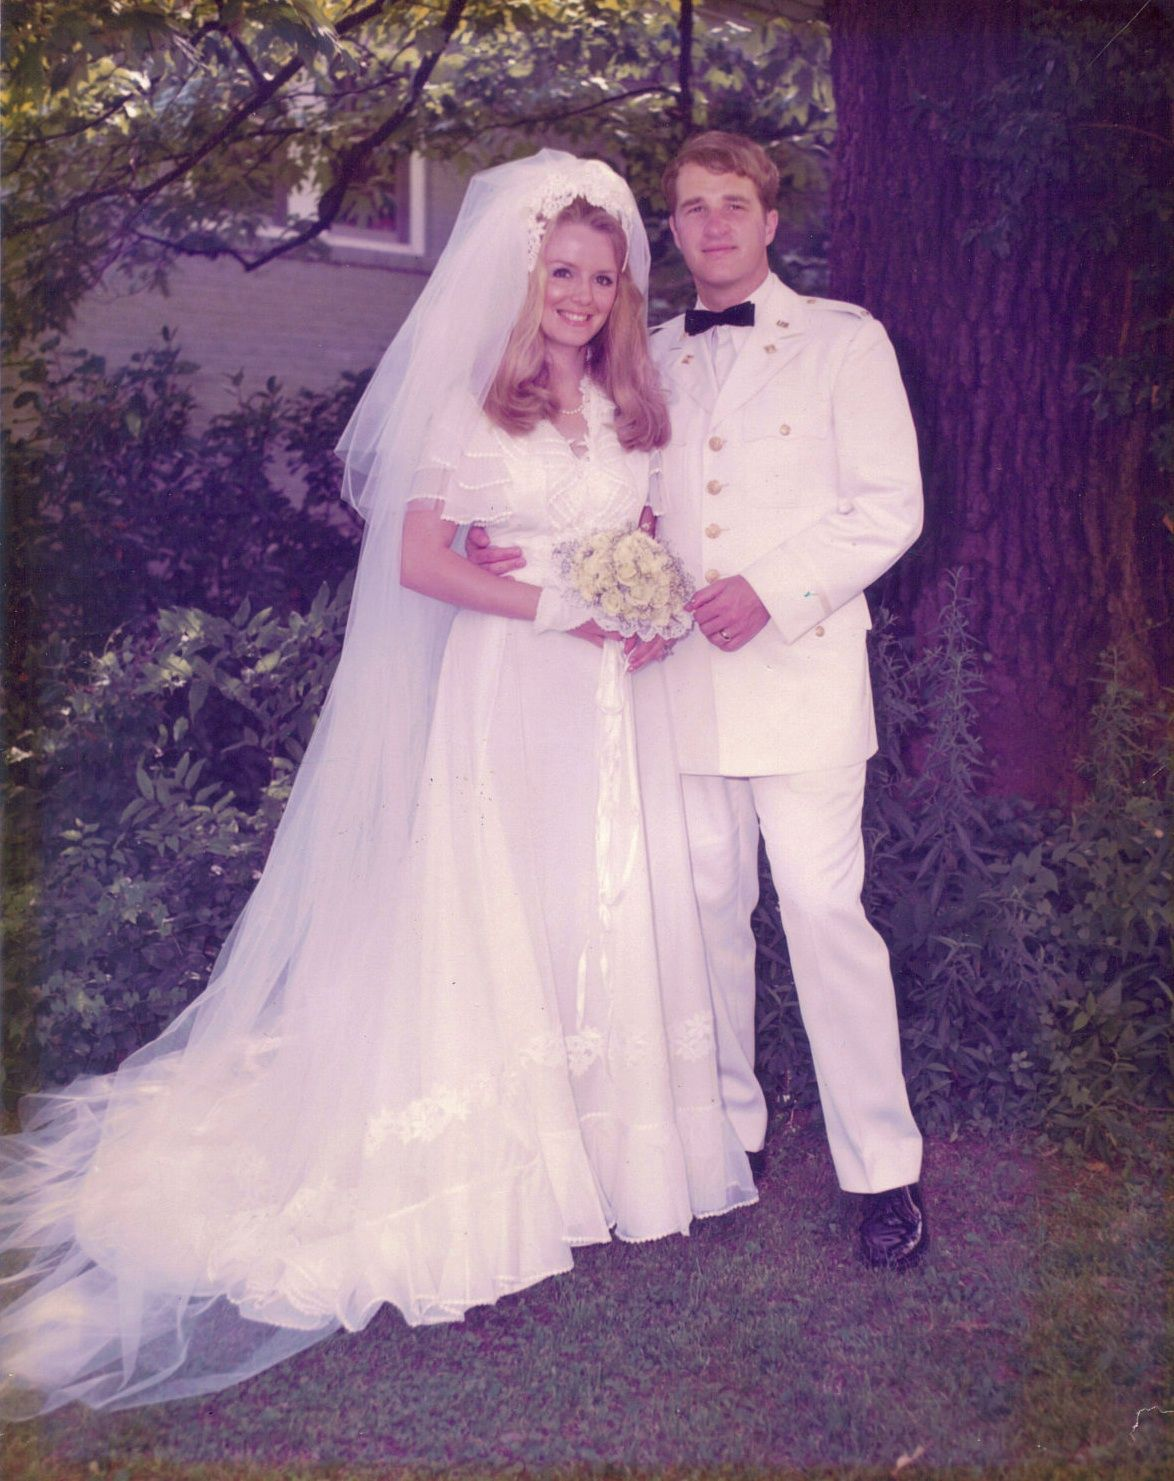 June 22nd, 1974 | Weddings or Special Events | Pinterest | June 22 ...